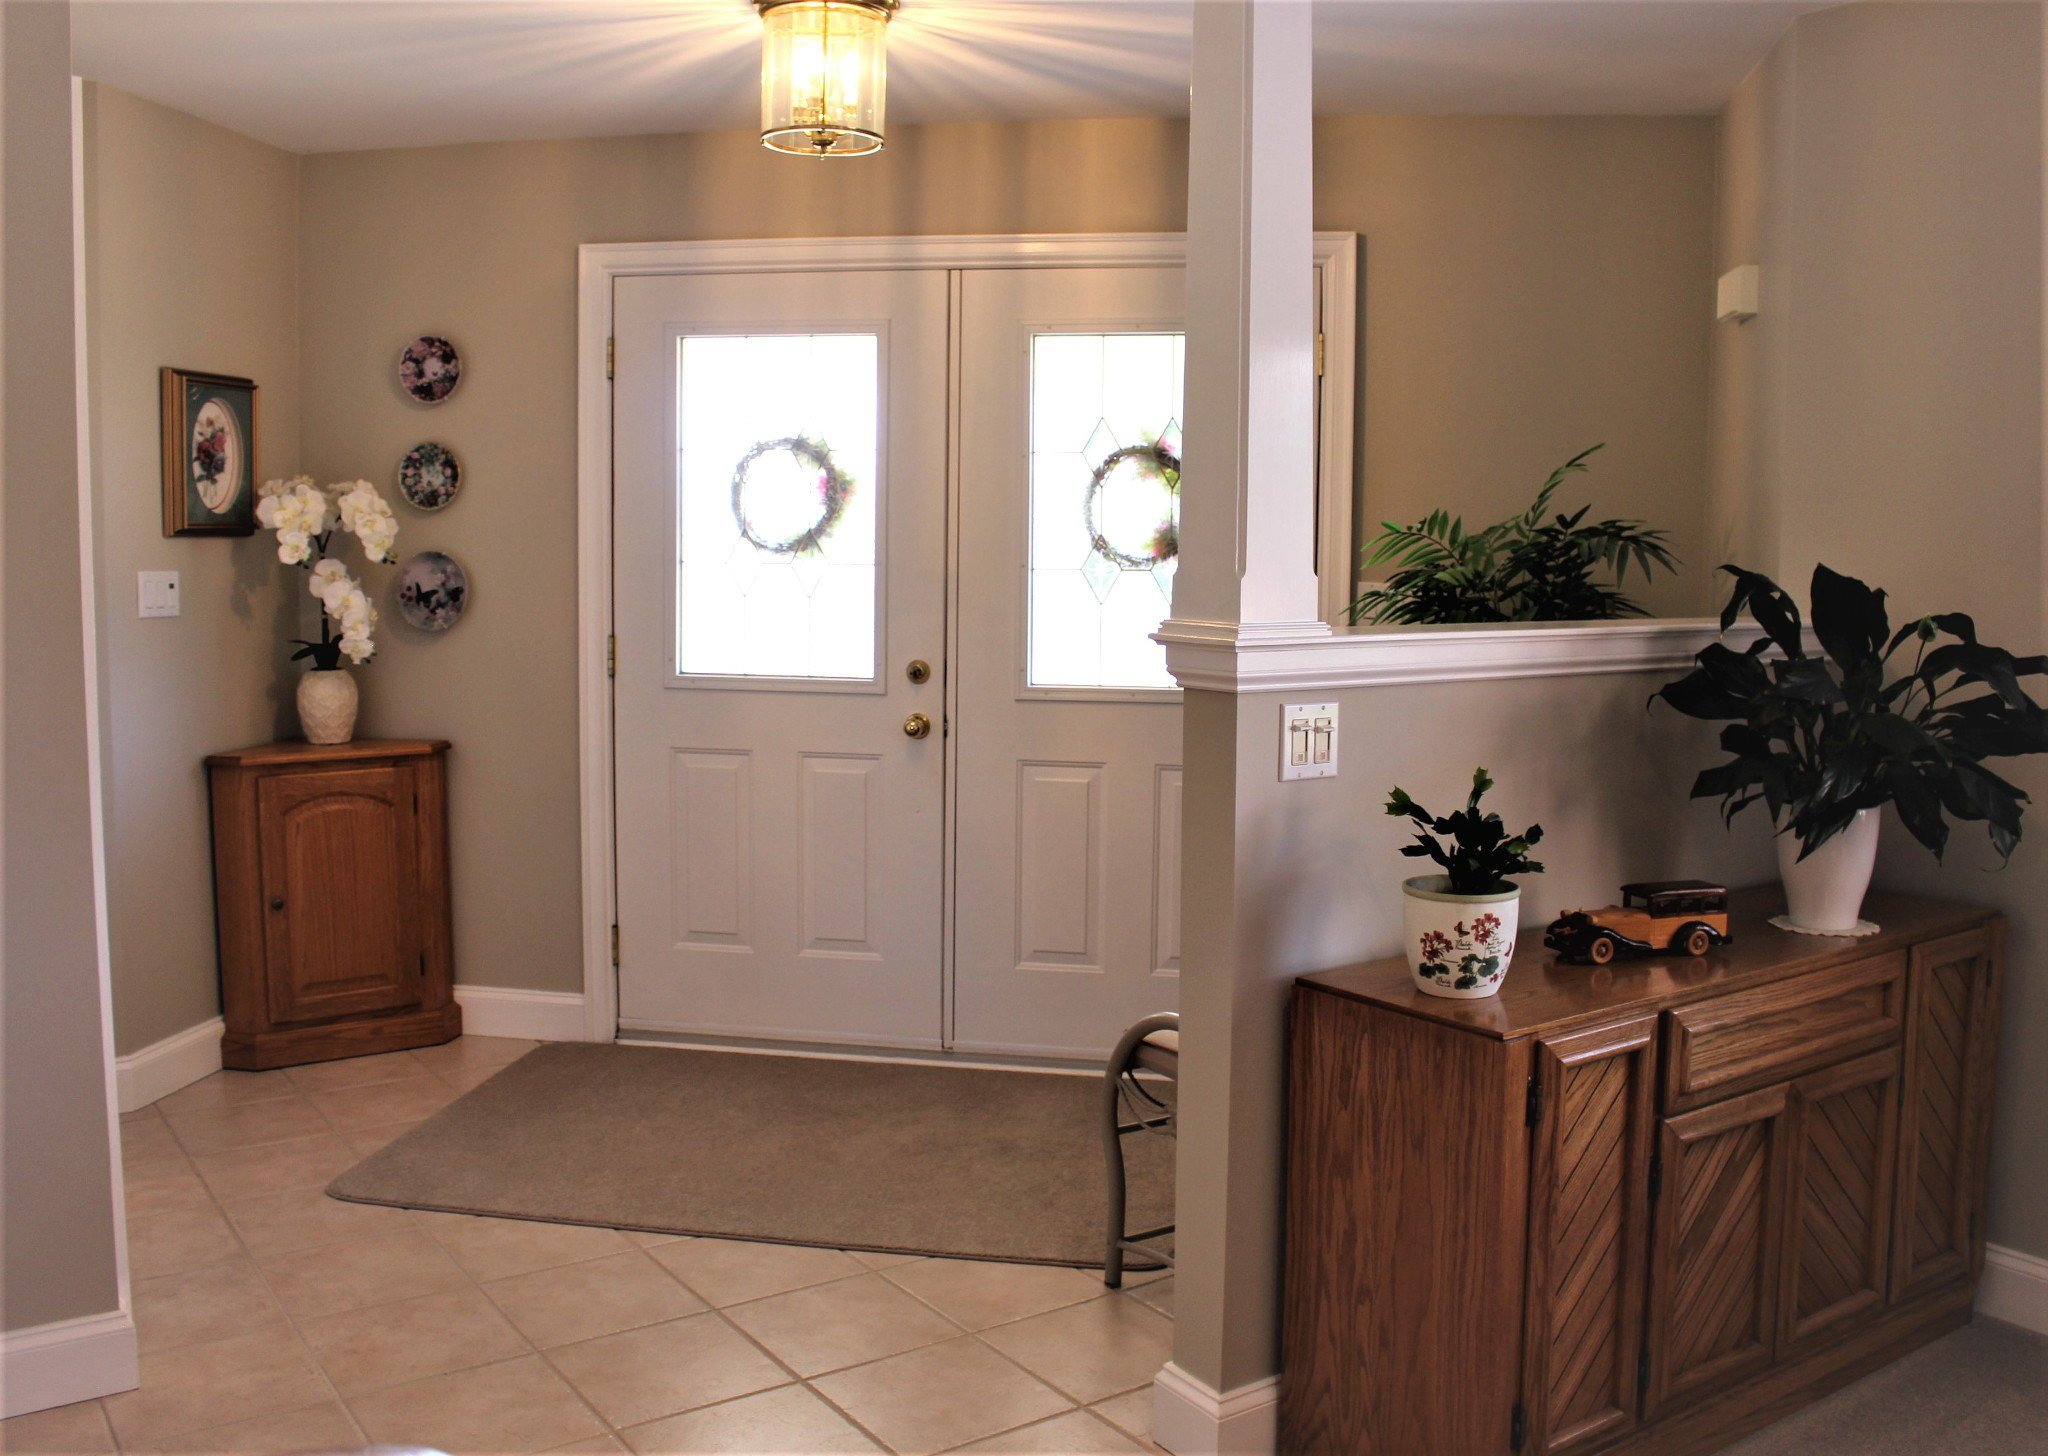 Photo 5: Photos: 159 Nawautin Drive in Grafton: Residential Detached for sale : MLS®# 40012652